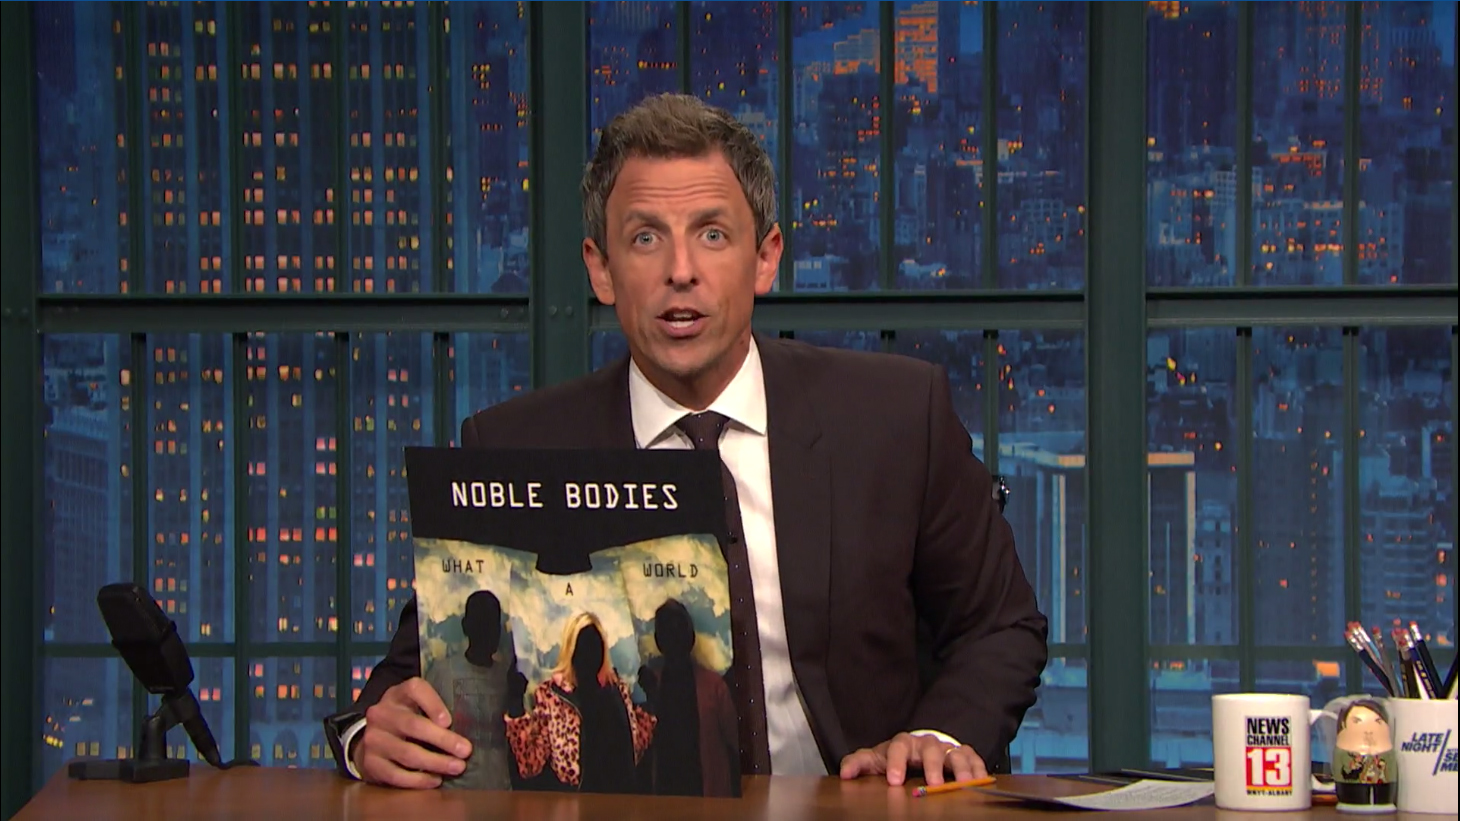 Seth Meyers 9.14.17 Noble Bodies 1.jpg